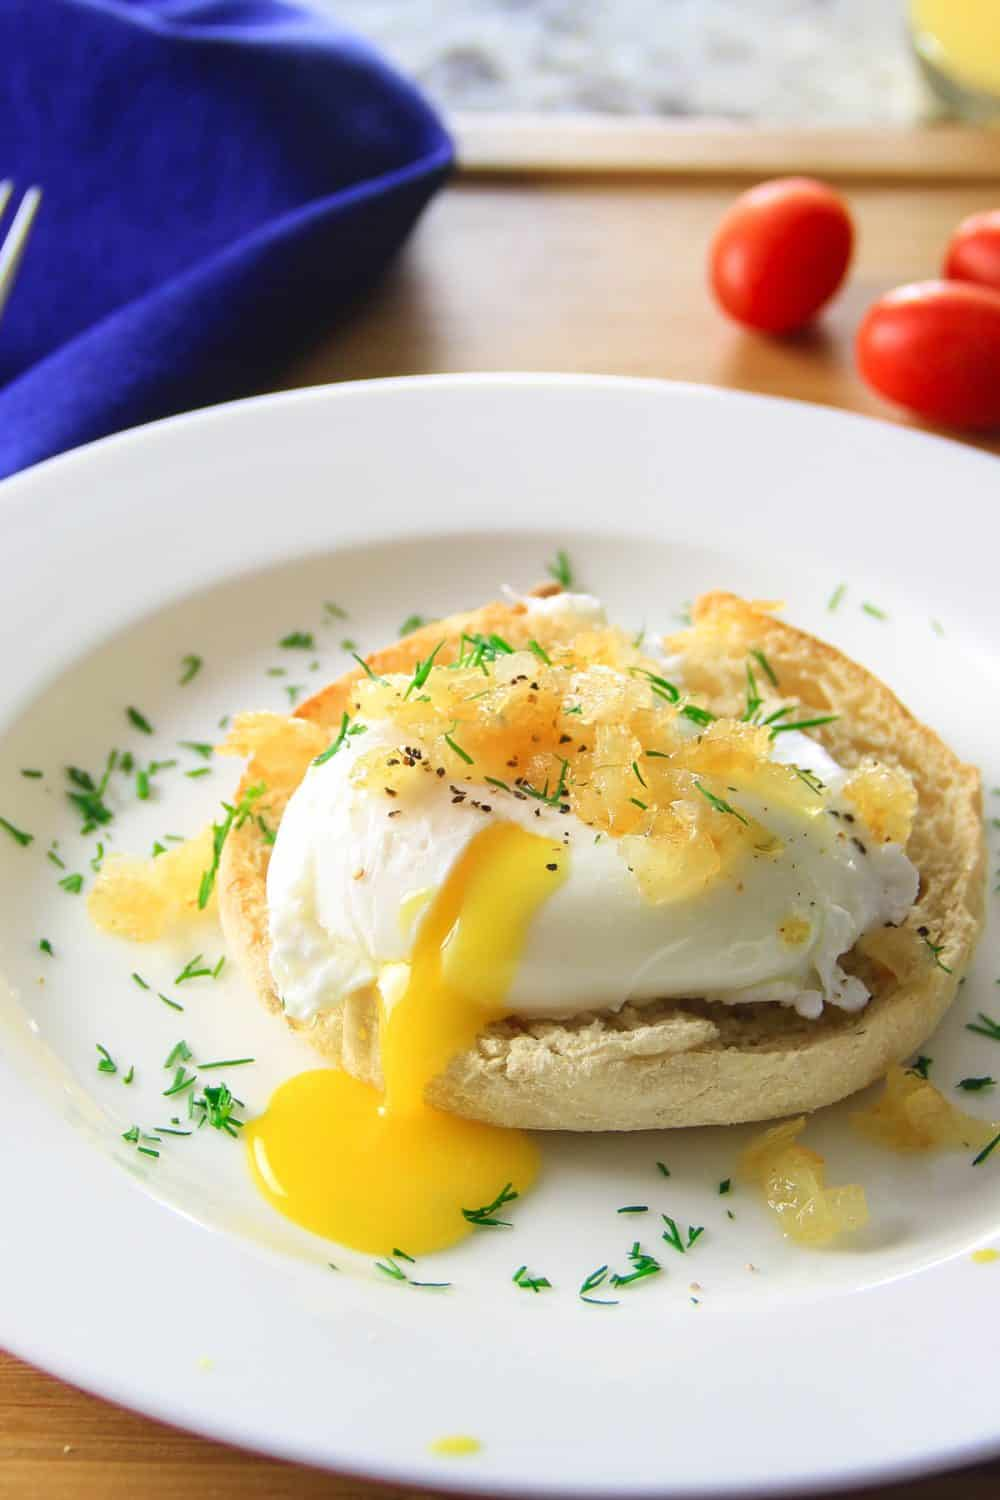 Close up of poached egg with caramelized onions on an English muffin, on a white plate with a blue napkin and grape tomatoes in the background.